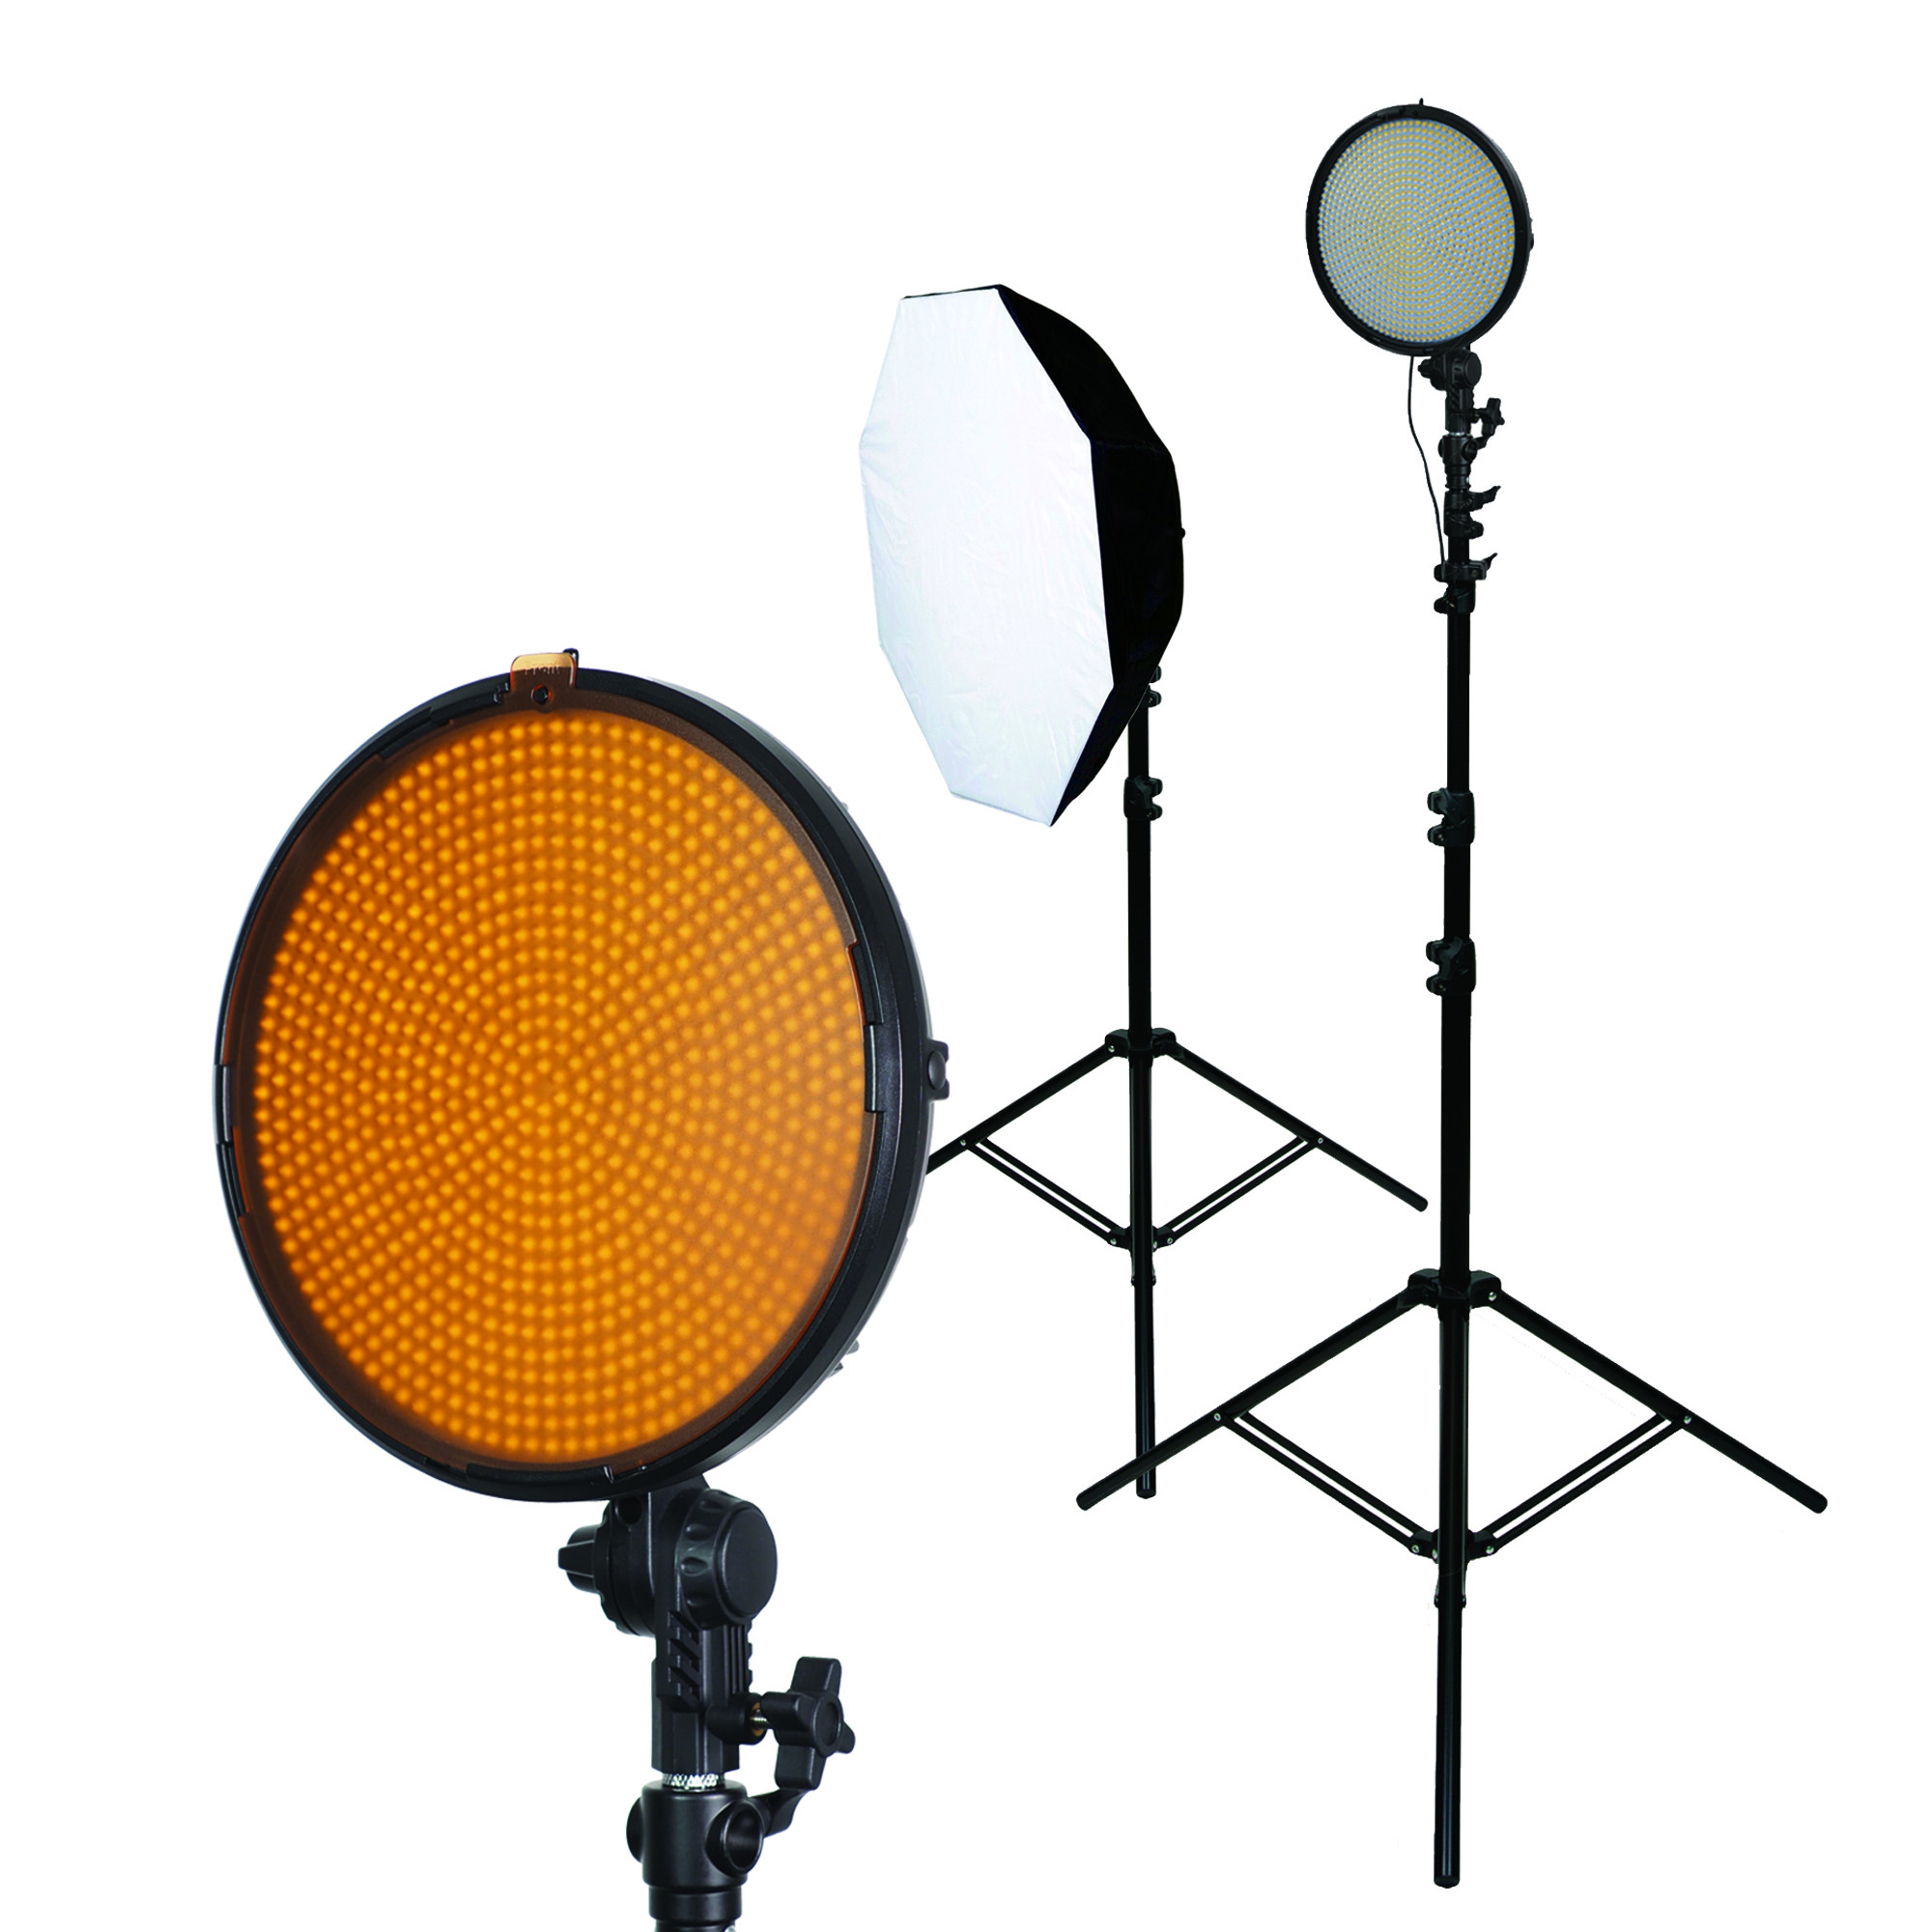 Eclairage Studio Led Ensemble D 39éclairage Studio 2 Têtes Vl800d Led Gosselin